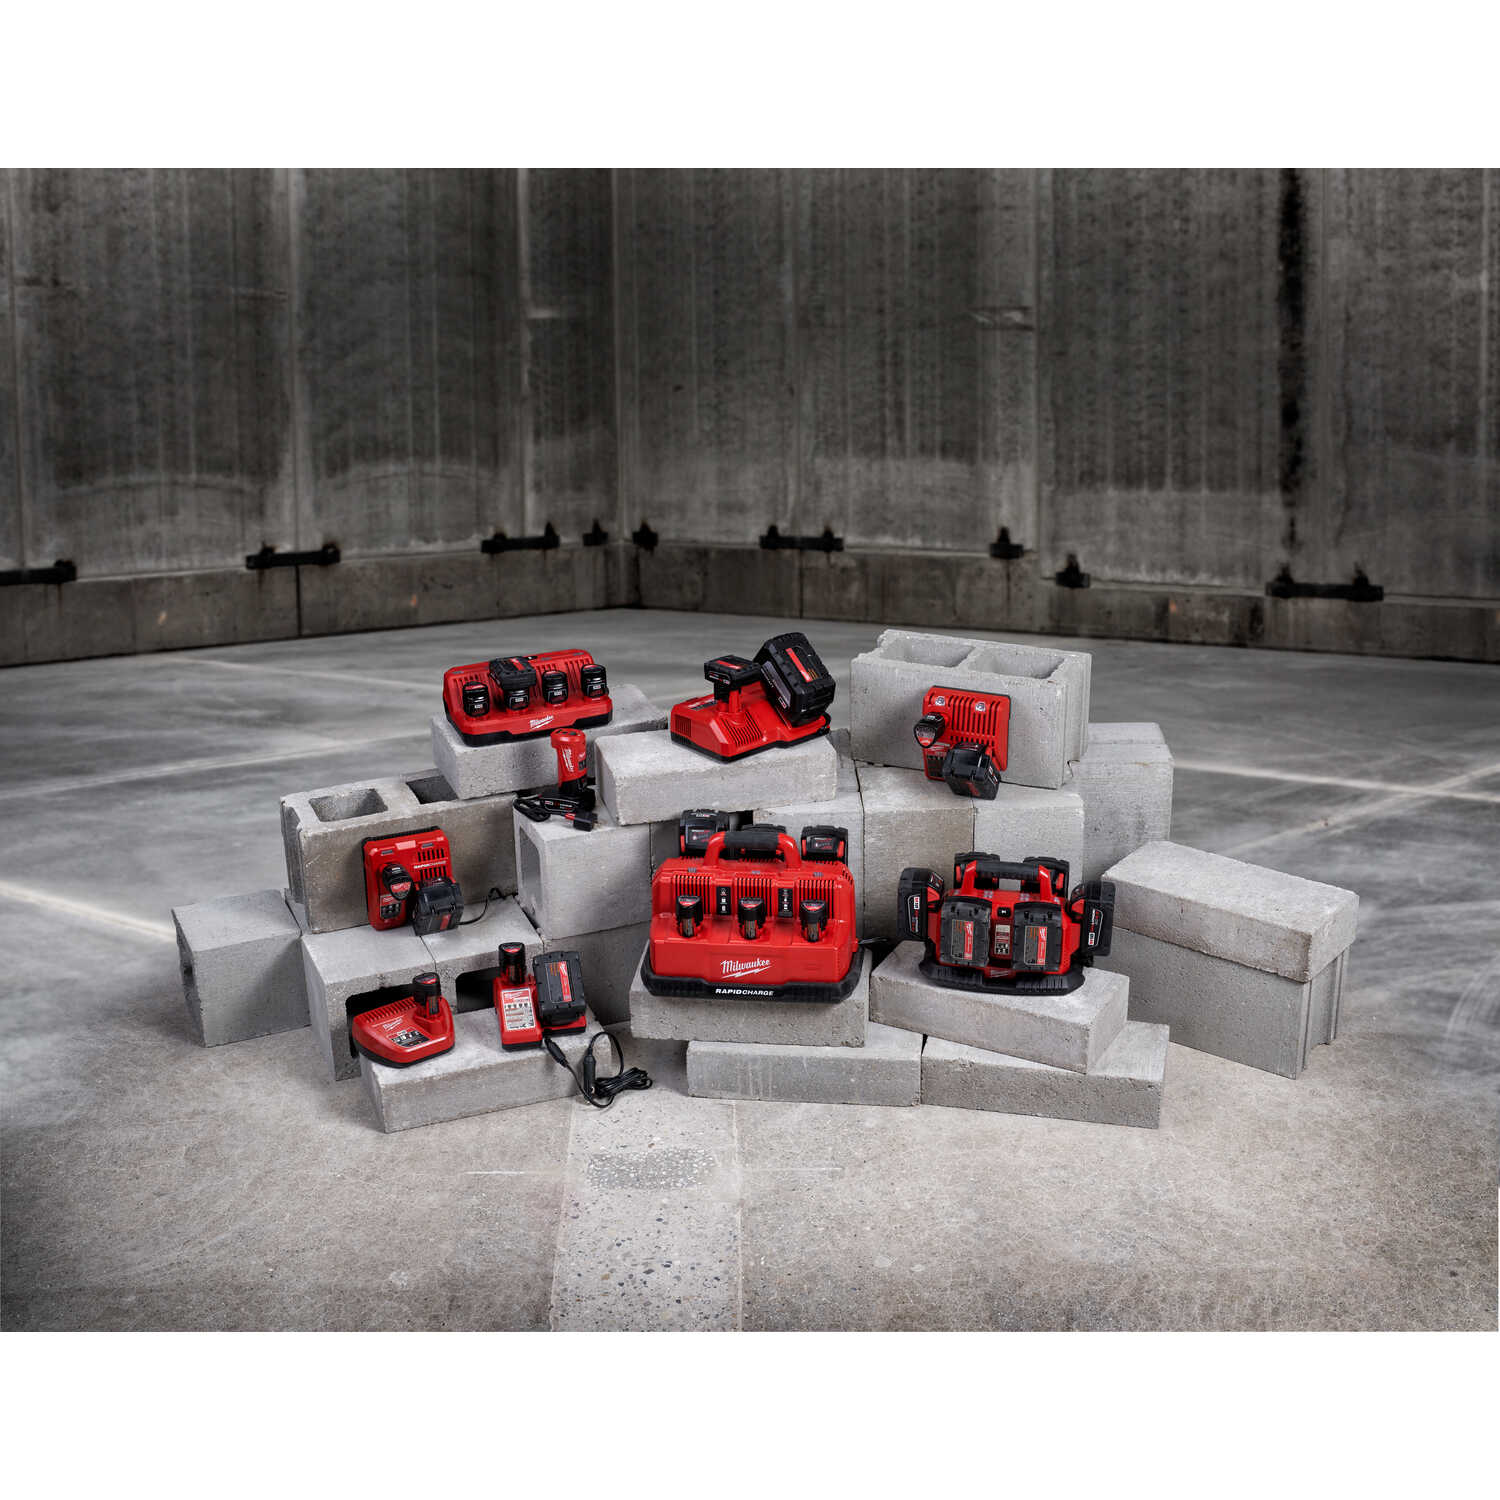 Milwaukee  M12 REDLITHIUM  XC6.0  12 volt 6 Ah Lithium-Ion  Battery Pack  1 pc.